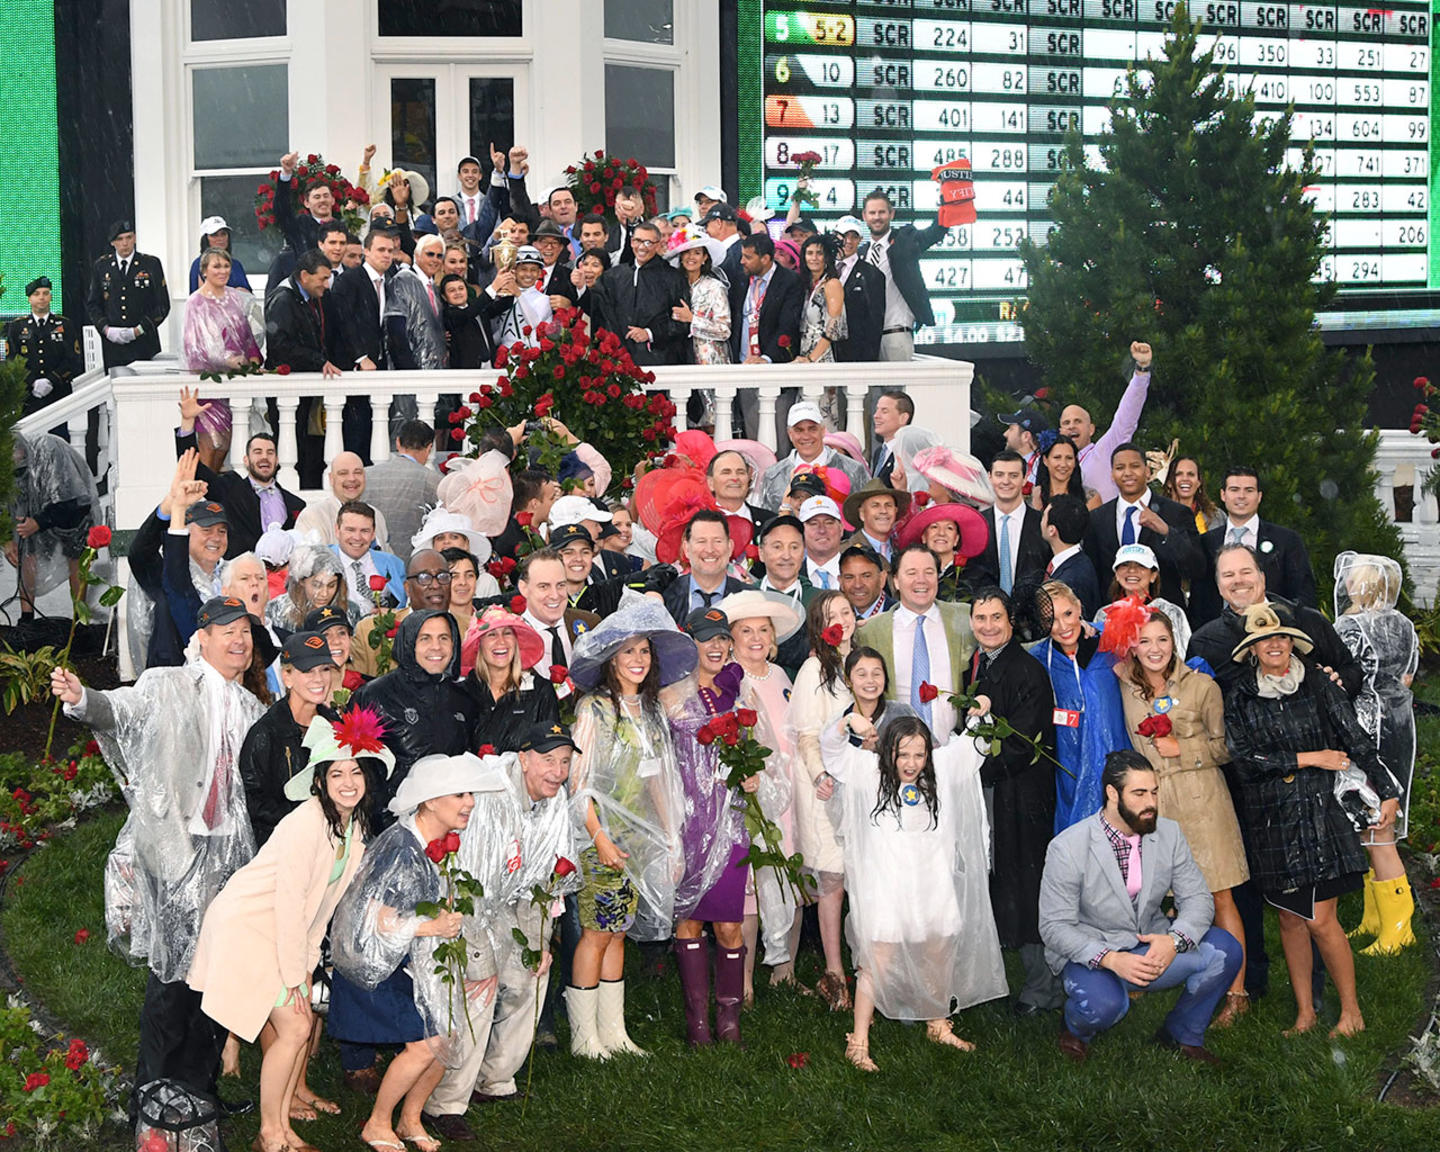 JUSTIFY---The-Kentucky-Derby-G1---144th-Running---05-05-18---R12---CD---Trophy-Group-Photo-06